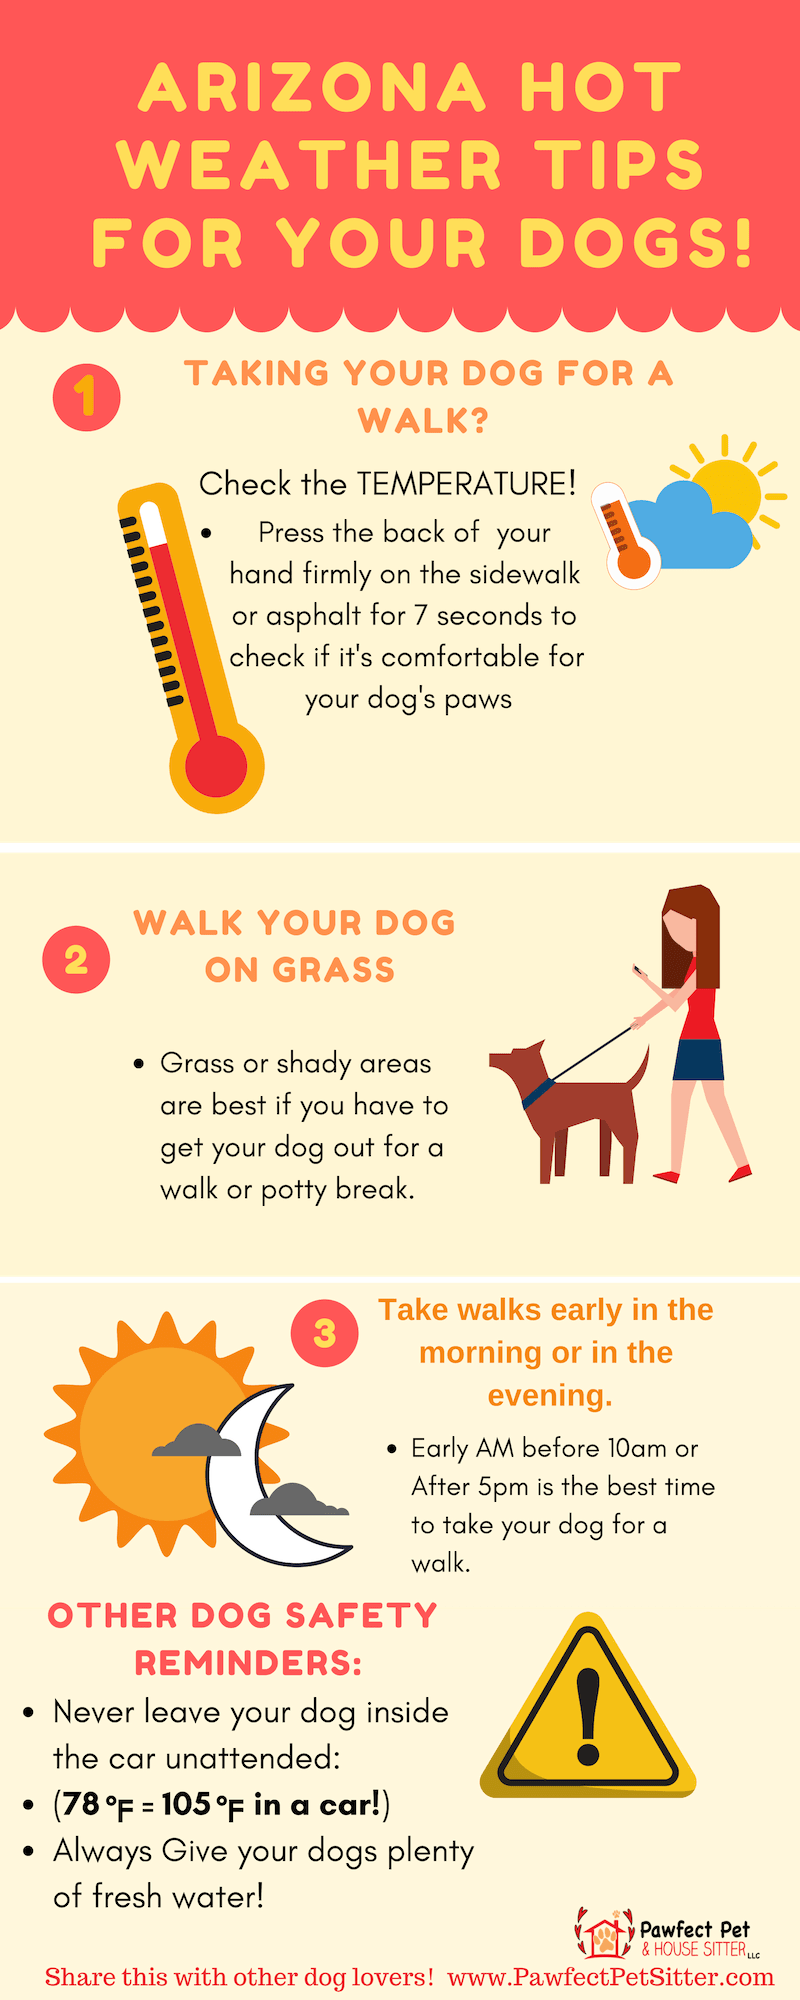 Is it too Hot to walk your dog?